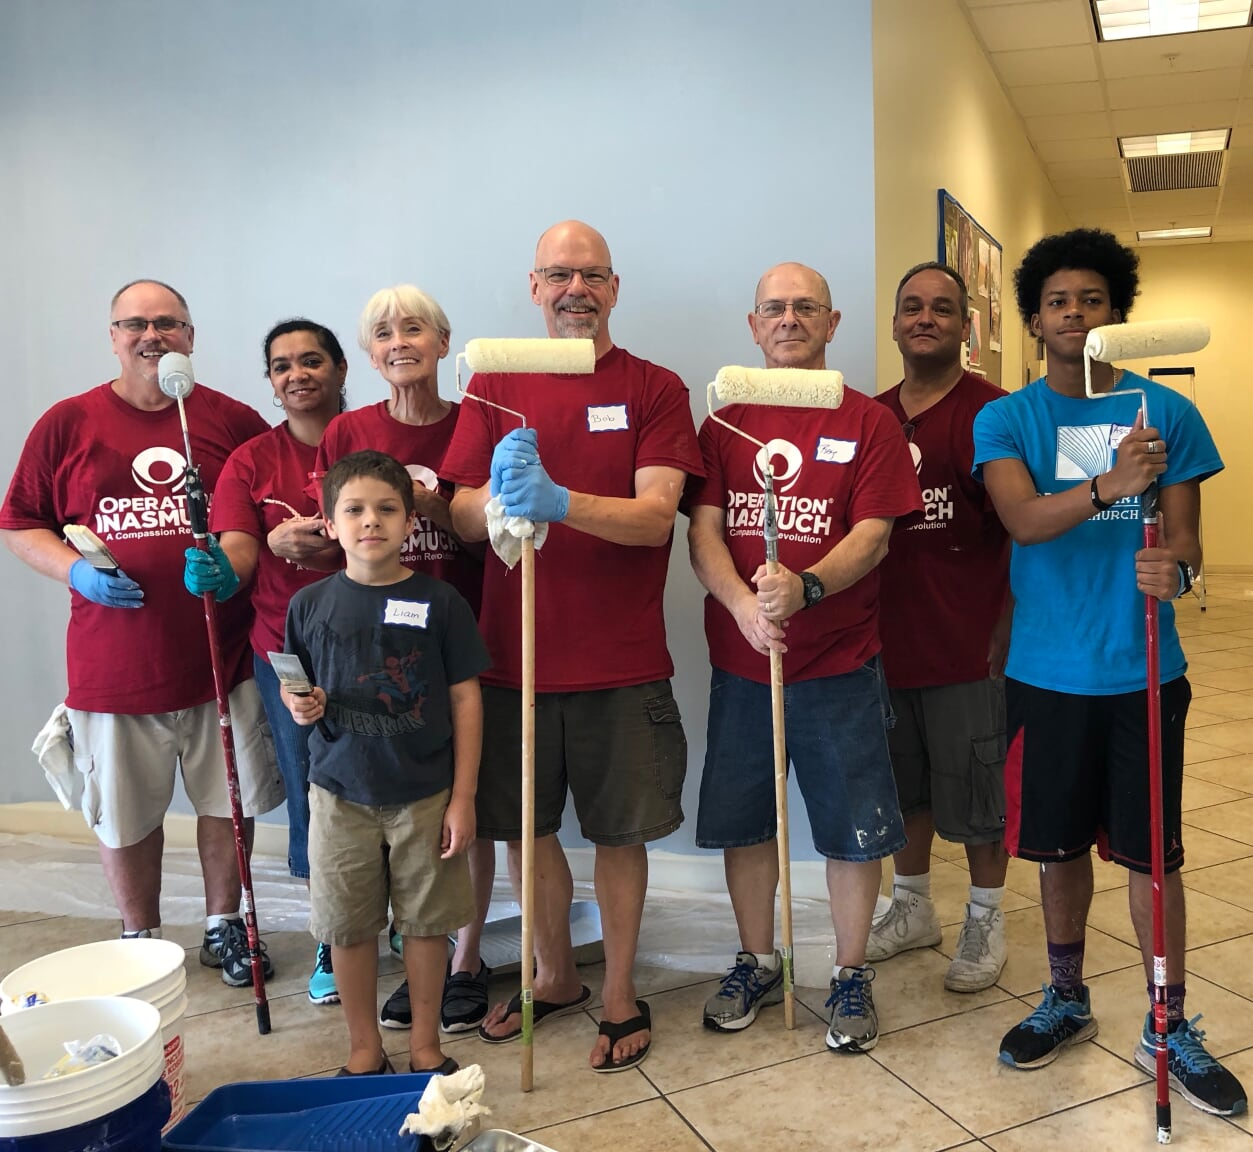 local-missions-with-north-stuart-baptist-church-martin-county-2.jpg